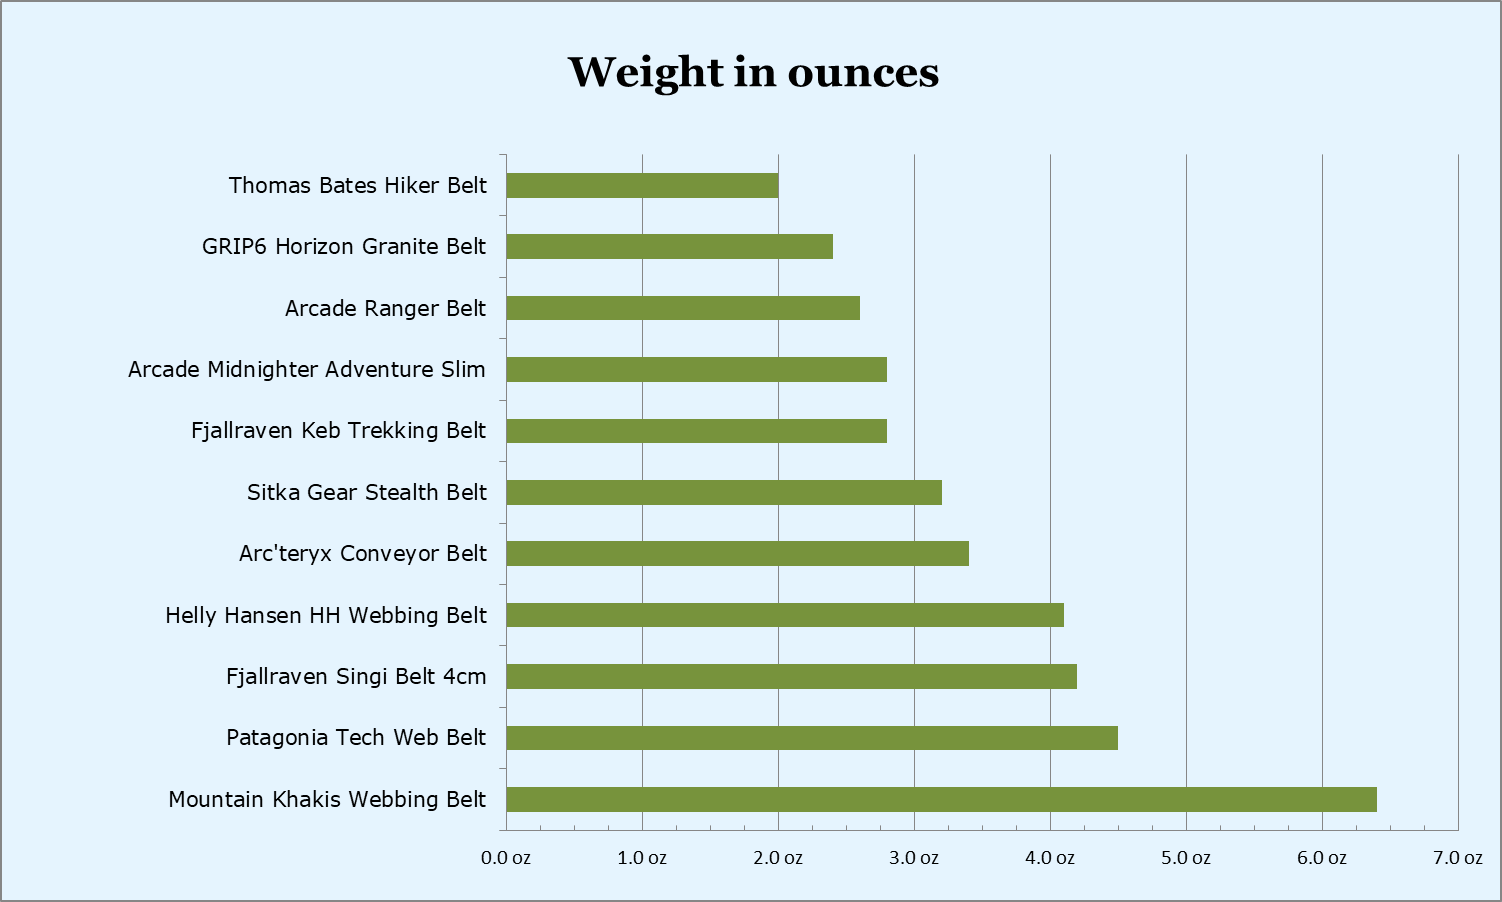 Hiking belts weight in ounces - comparison